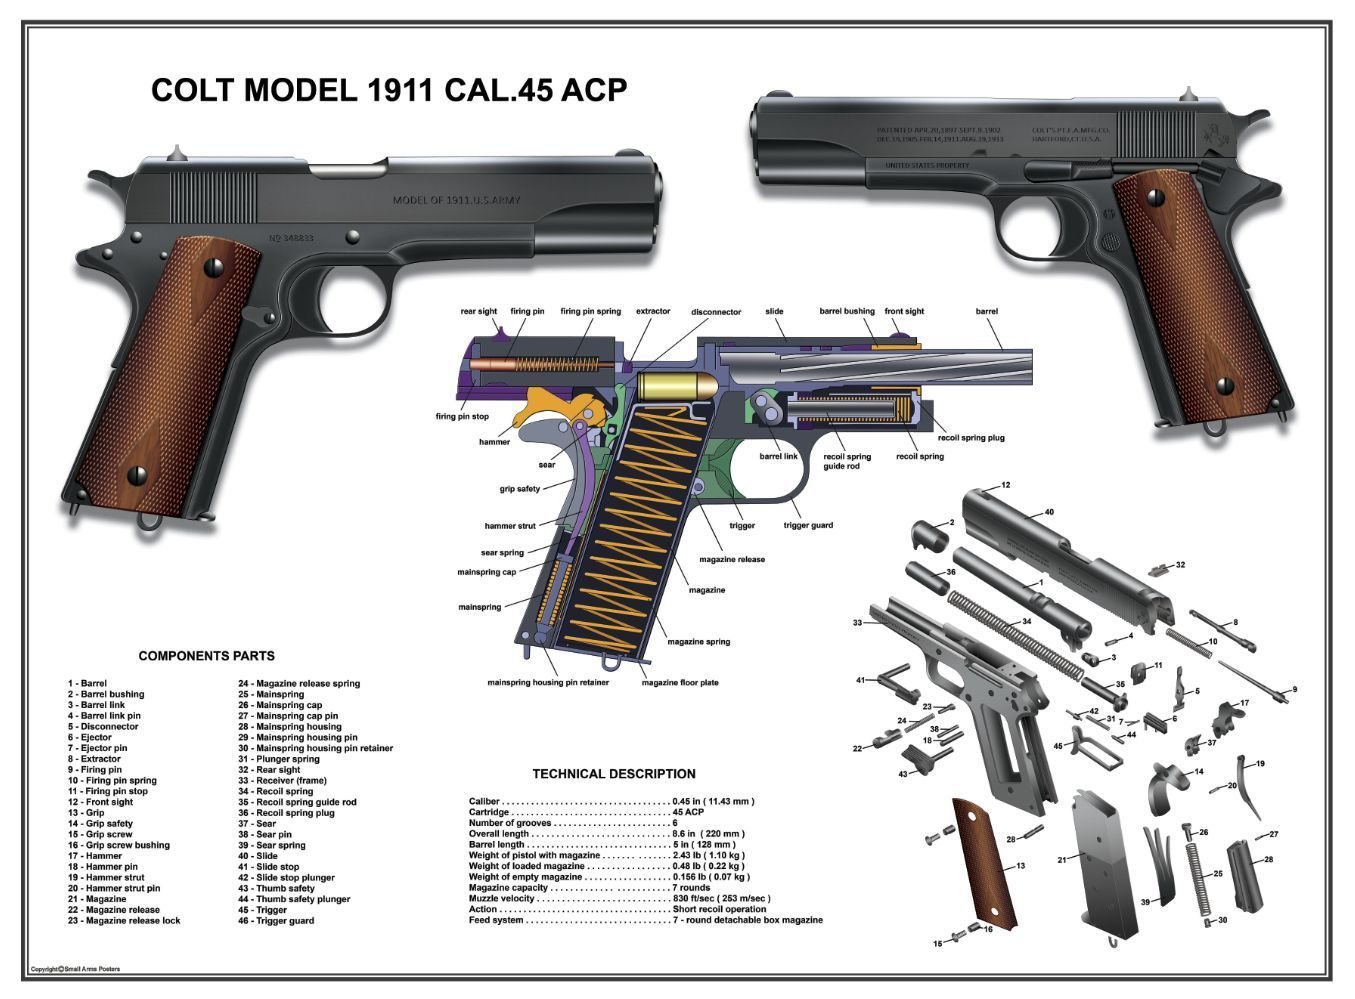 poster 12 x18 u s army colt 1911 cal 45 acp manual exploded parts diagram ww2 ebay [ 1355 x 999 Pixel ]